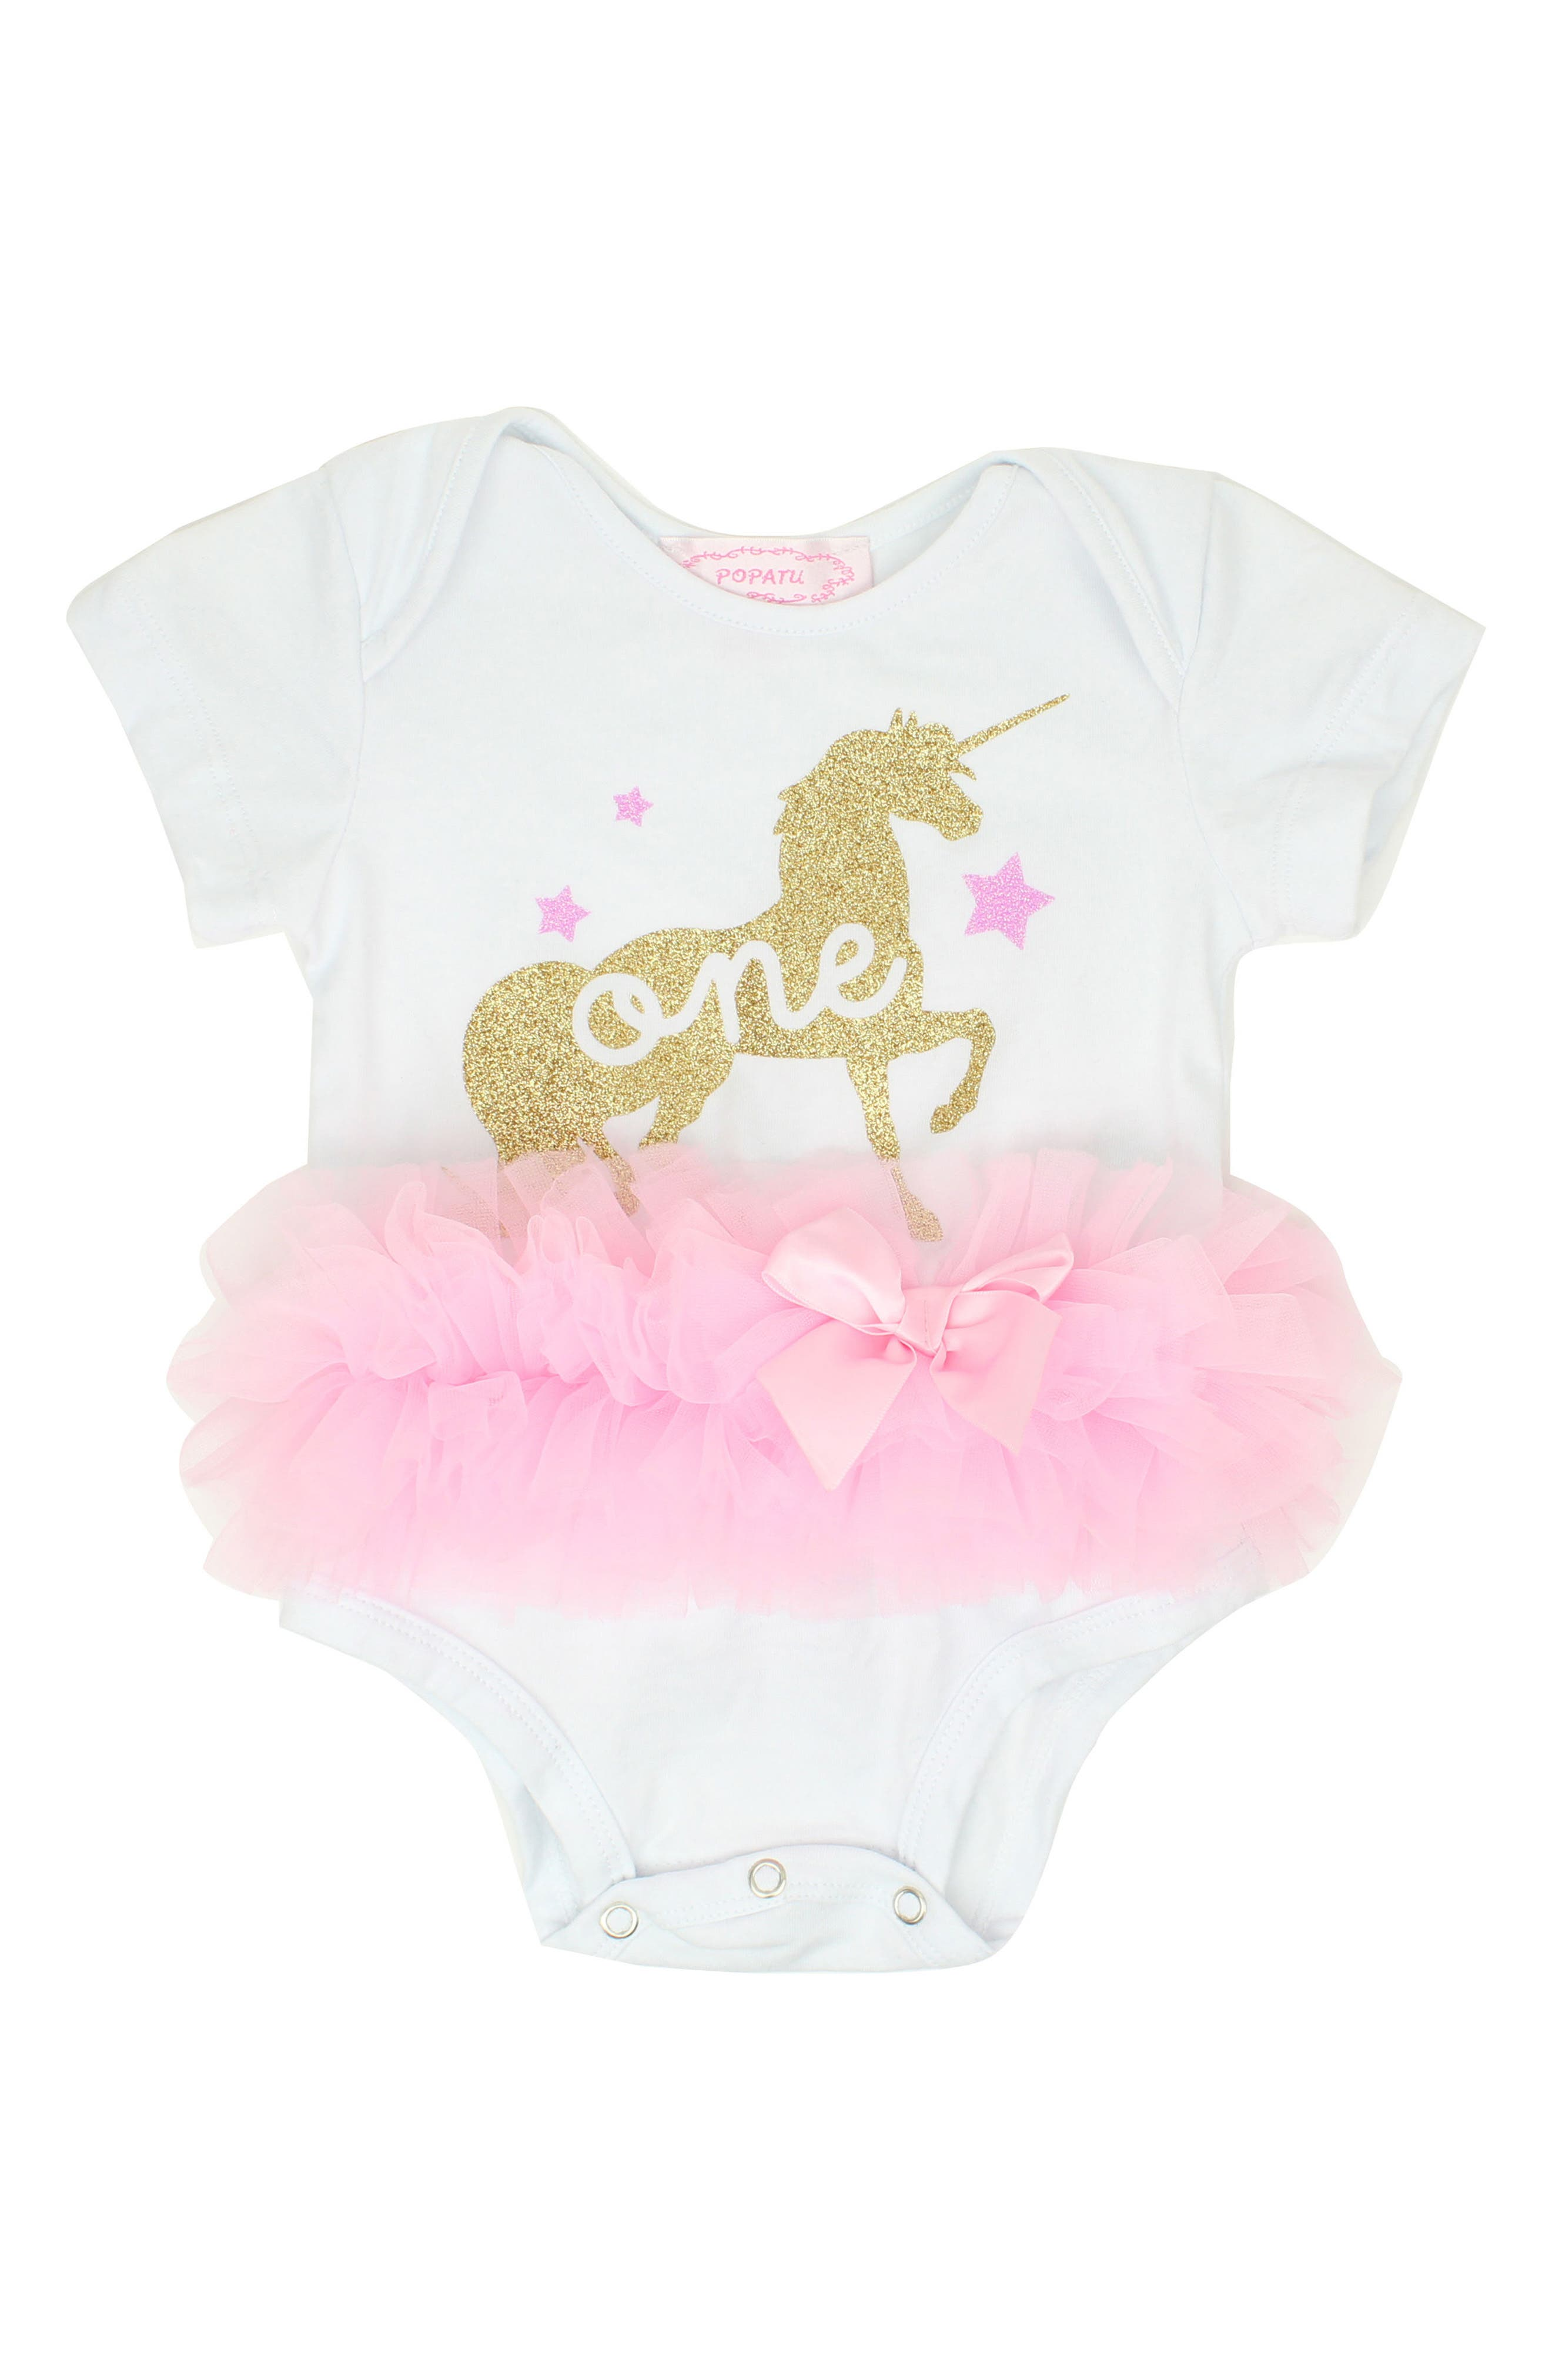 One Unicorn Tutu Bodysuit,                             Main thumbnail 1, color,                             White